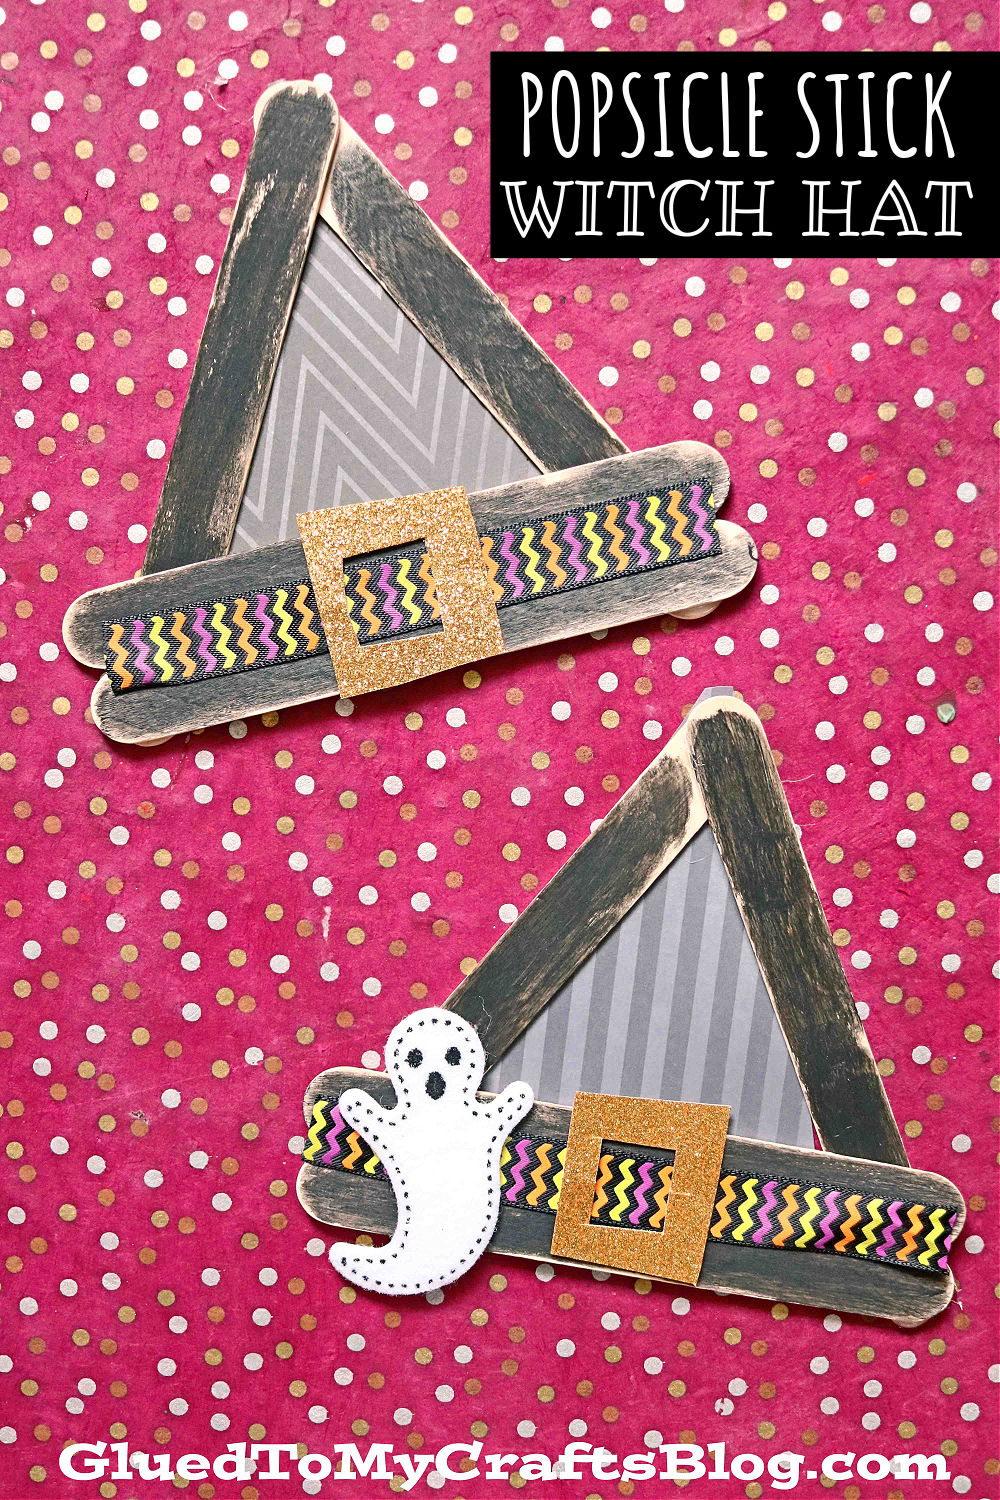 Popsicle Stick Witch Hats - Kid Craft Idea For Halloween